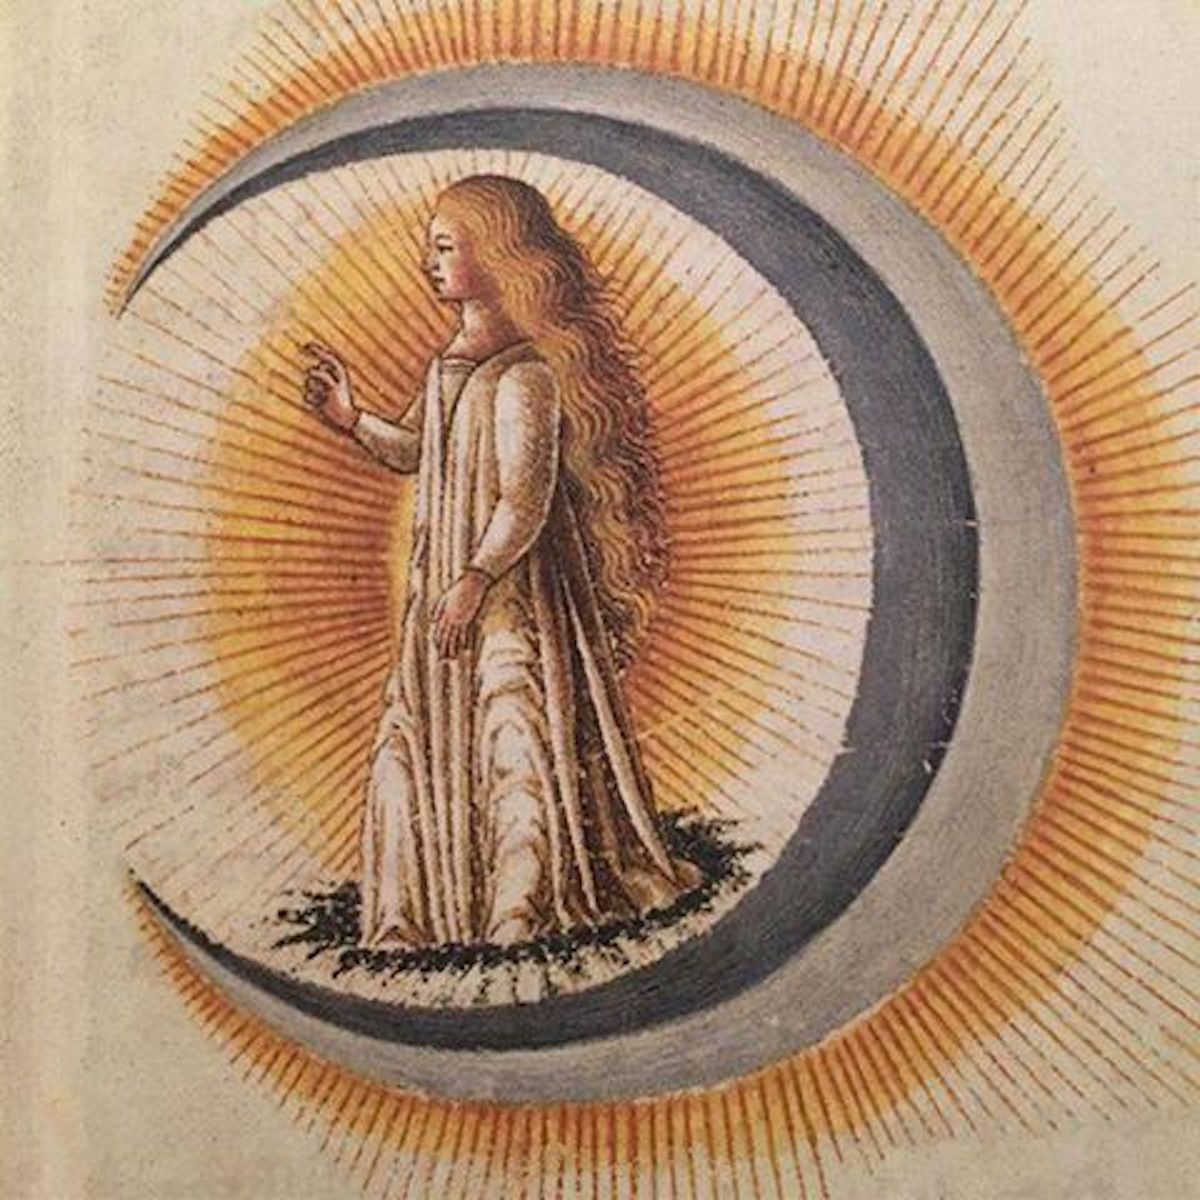 advent 5 'Luna', from the wedding book Le nozze di Costantio Sforza e Camilla d'Aragona, 1480